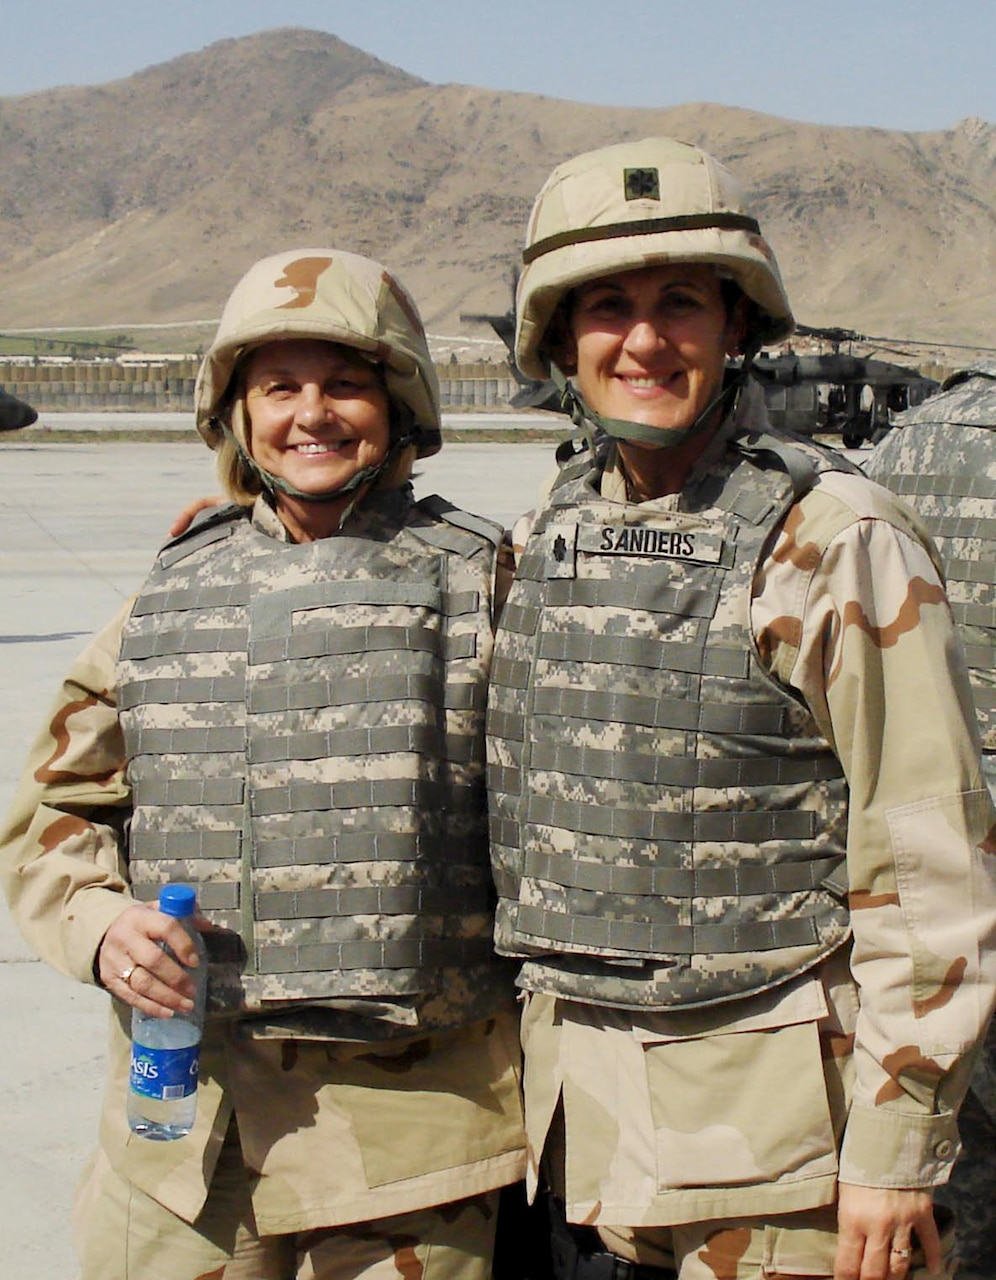 Two women in flak vests and hard hats stand on the tarmac.